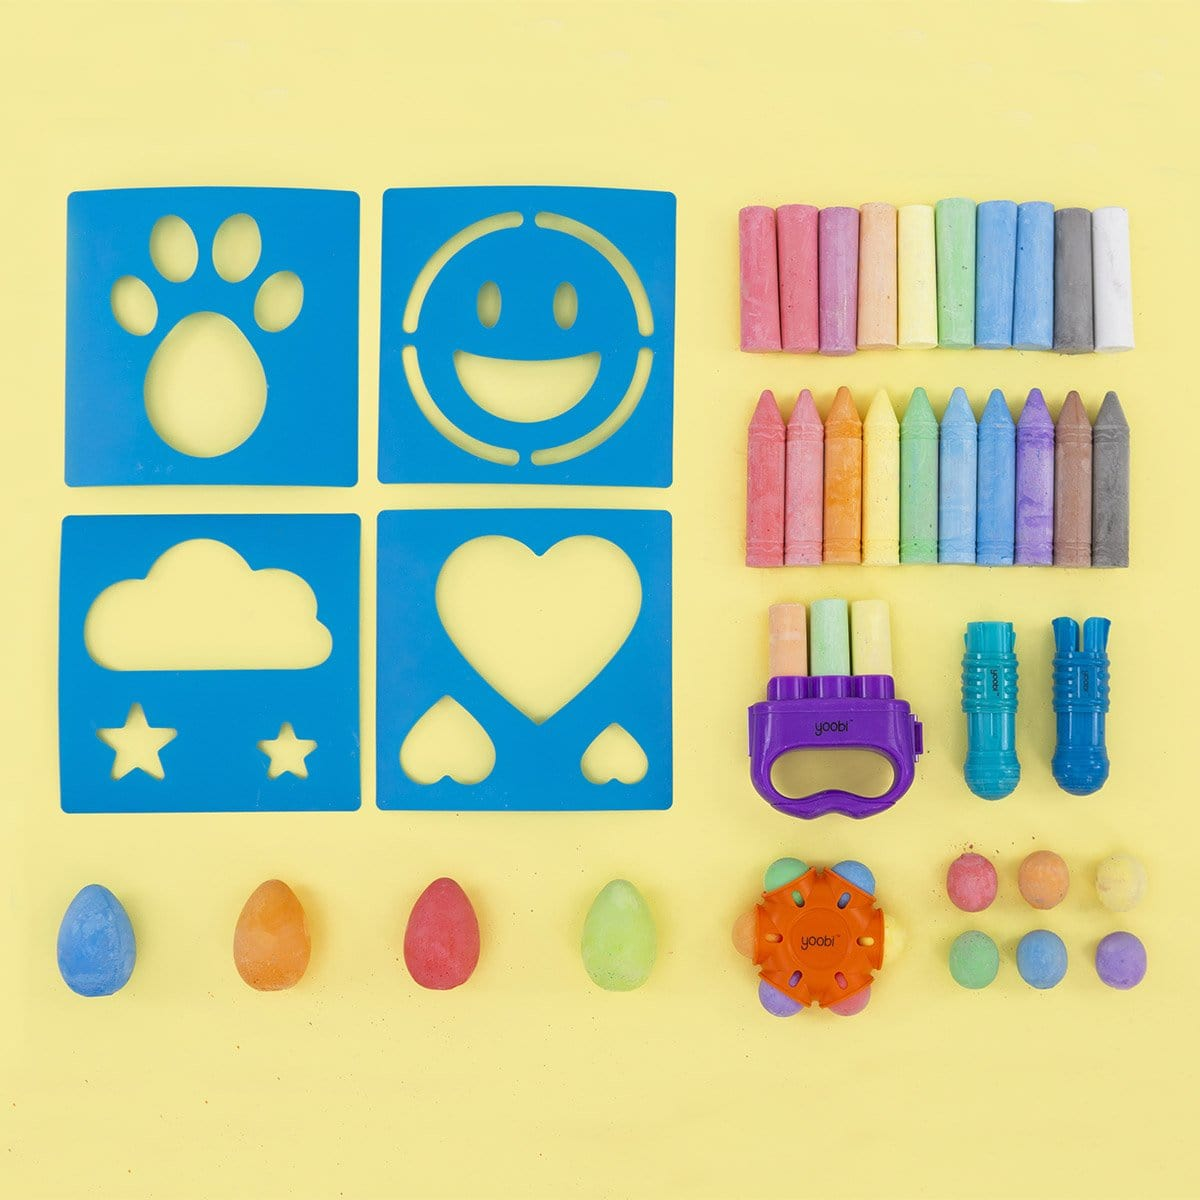 48 Piece Sidewalk Chalk Assortment of Poof Colors Great for Playing Outdoors Comes with a Convenient Carrying Case and Handle